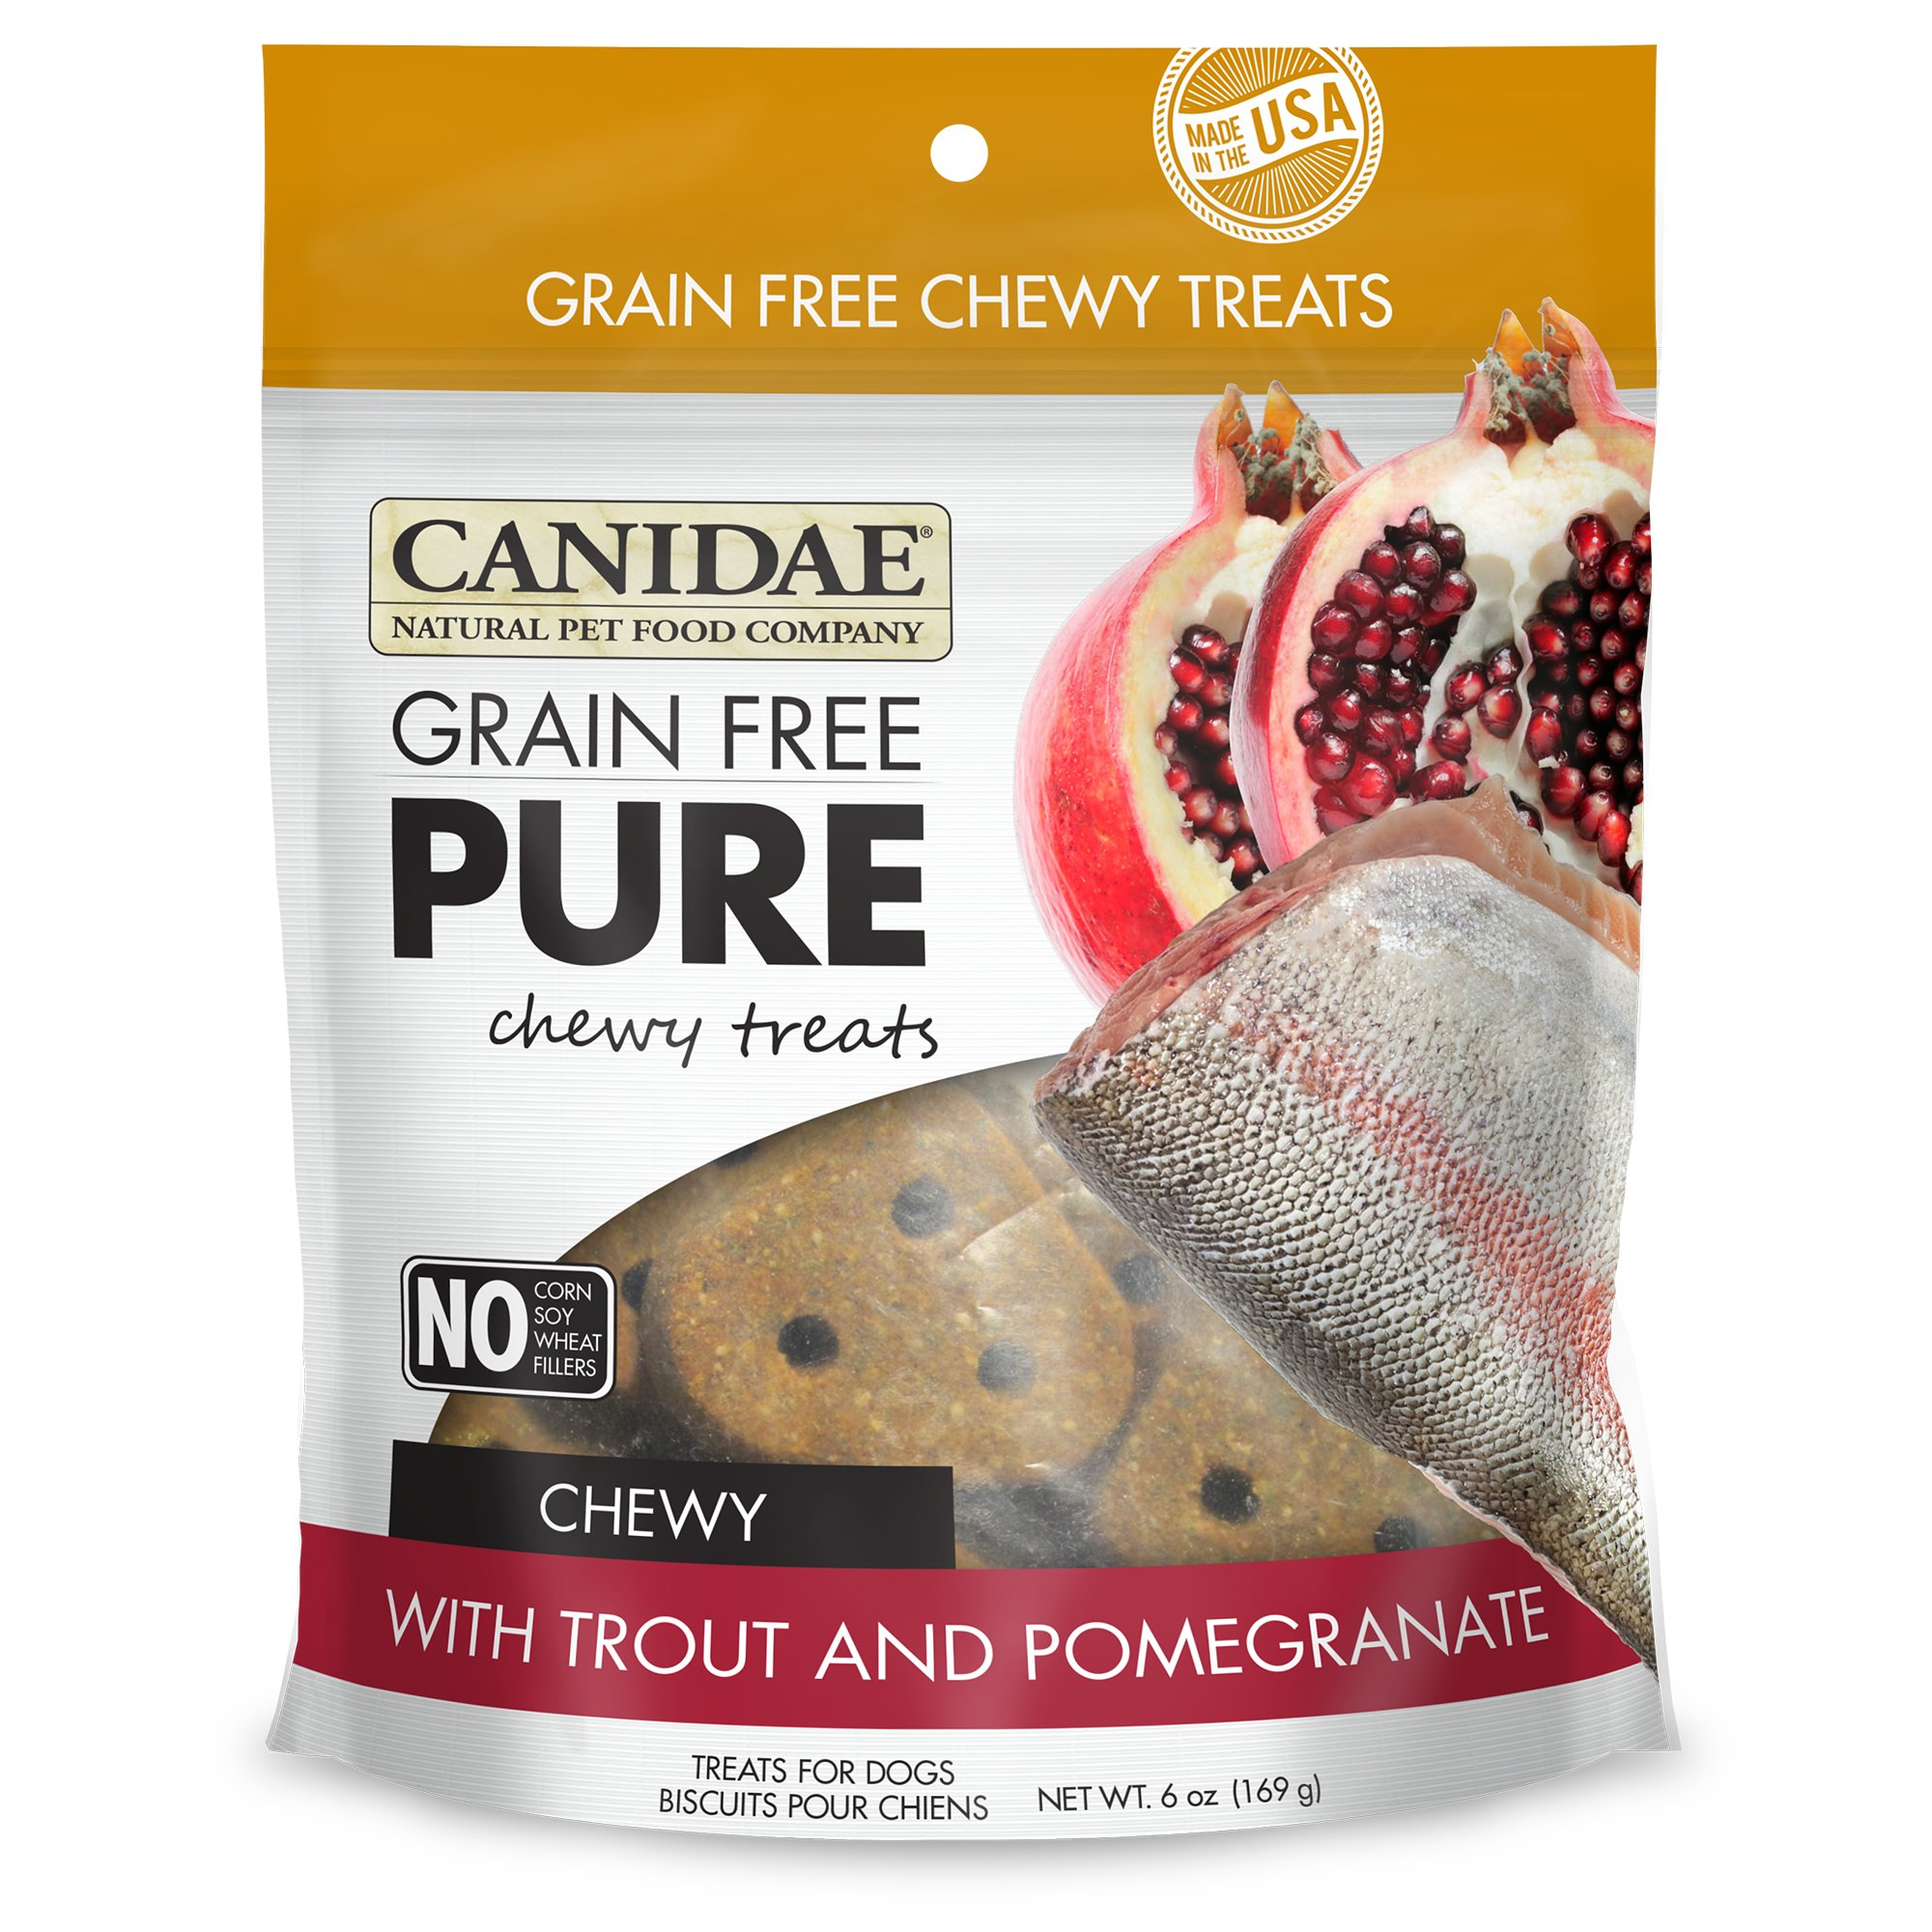 Canidae Grain Free Pure Trout & Pomegranate Chewy Dog Treats